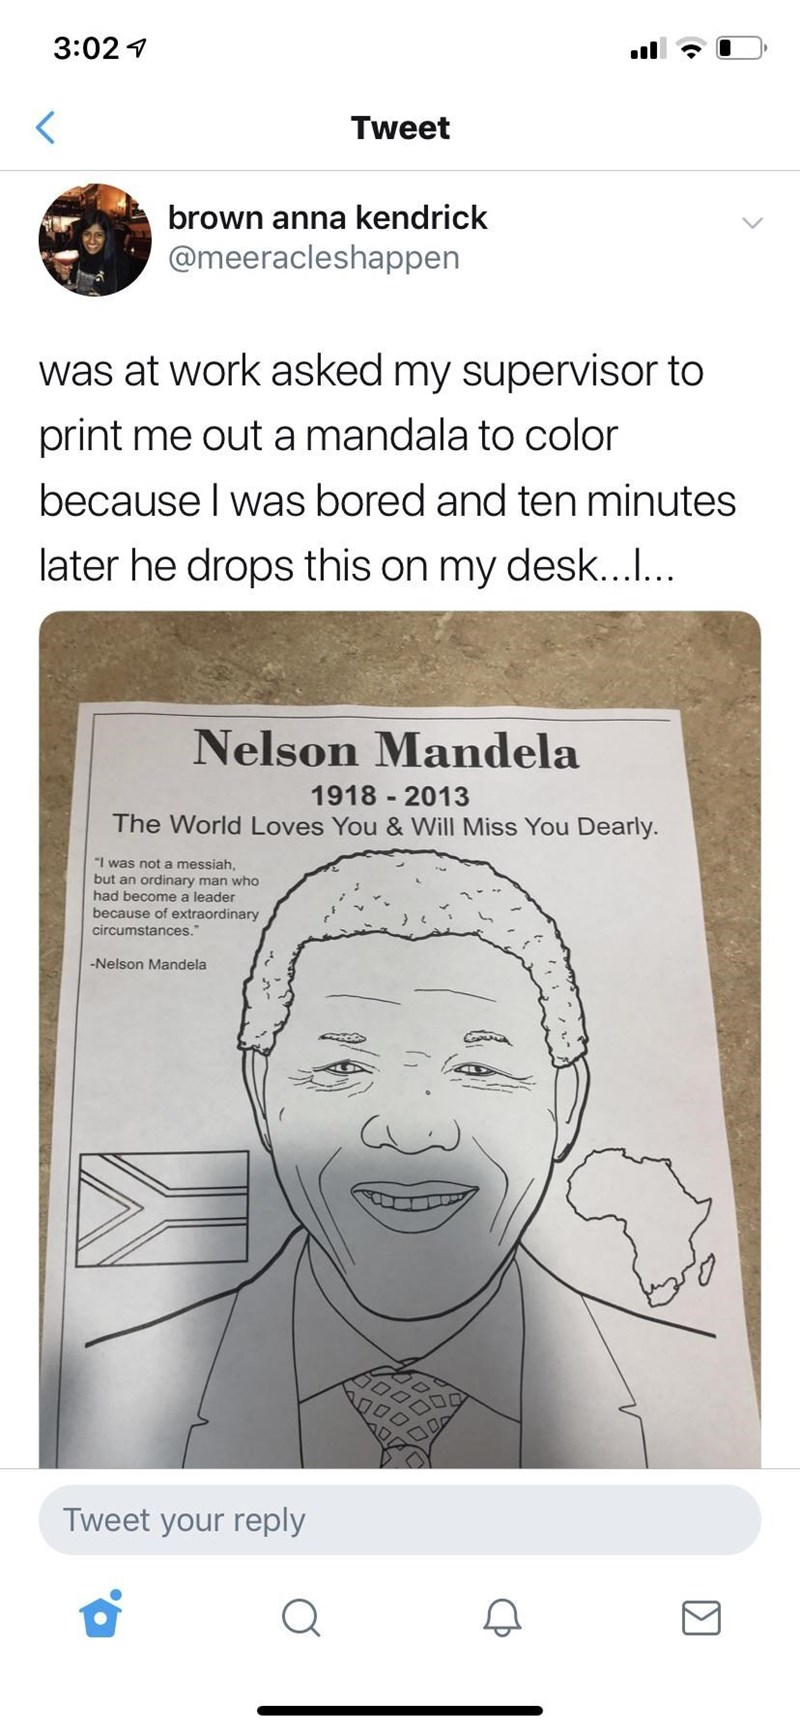 """facepalm - Face - 3:02 Tweet brown anna kendrick @meeracleshappen was at work asked my supervisor to print me out a mandala to color because I was bored and ten minutes later he drops this on my desk...... Nelson Mandela 1918 2013 The World Loves You & Will Miss You Dearly. """"I was not a messiah, but an ordinary man who had become a leader because of extraordinary circumstances. -Nelson Mandela Tweet your reply"""